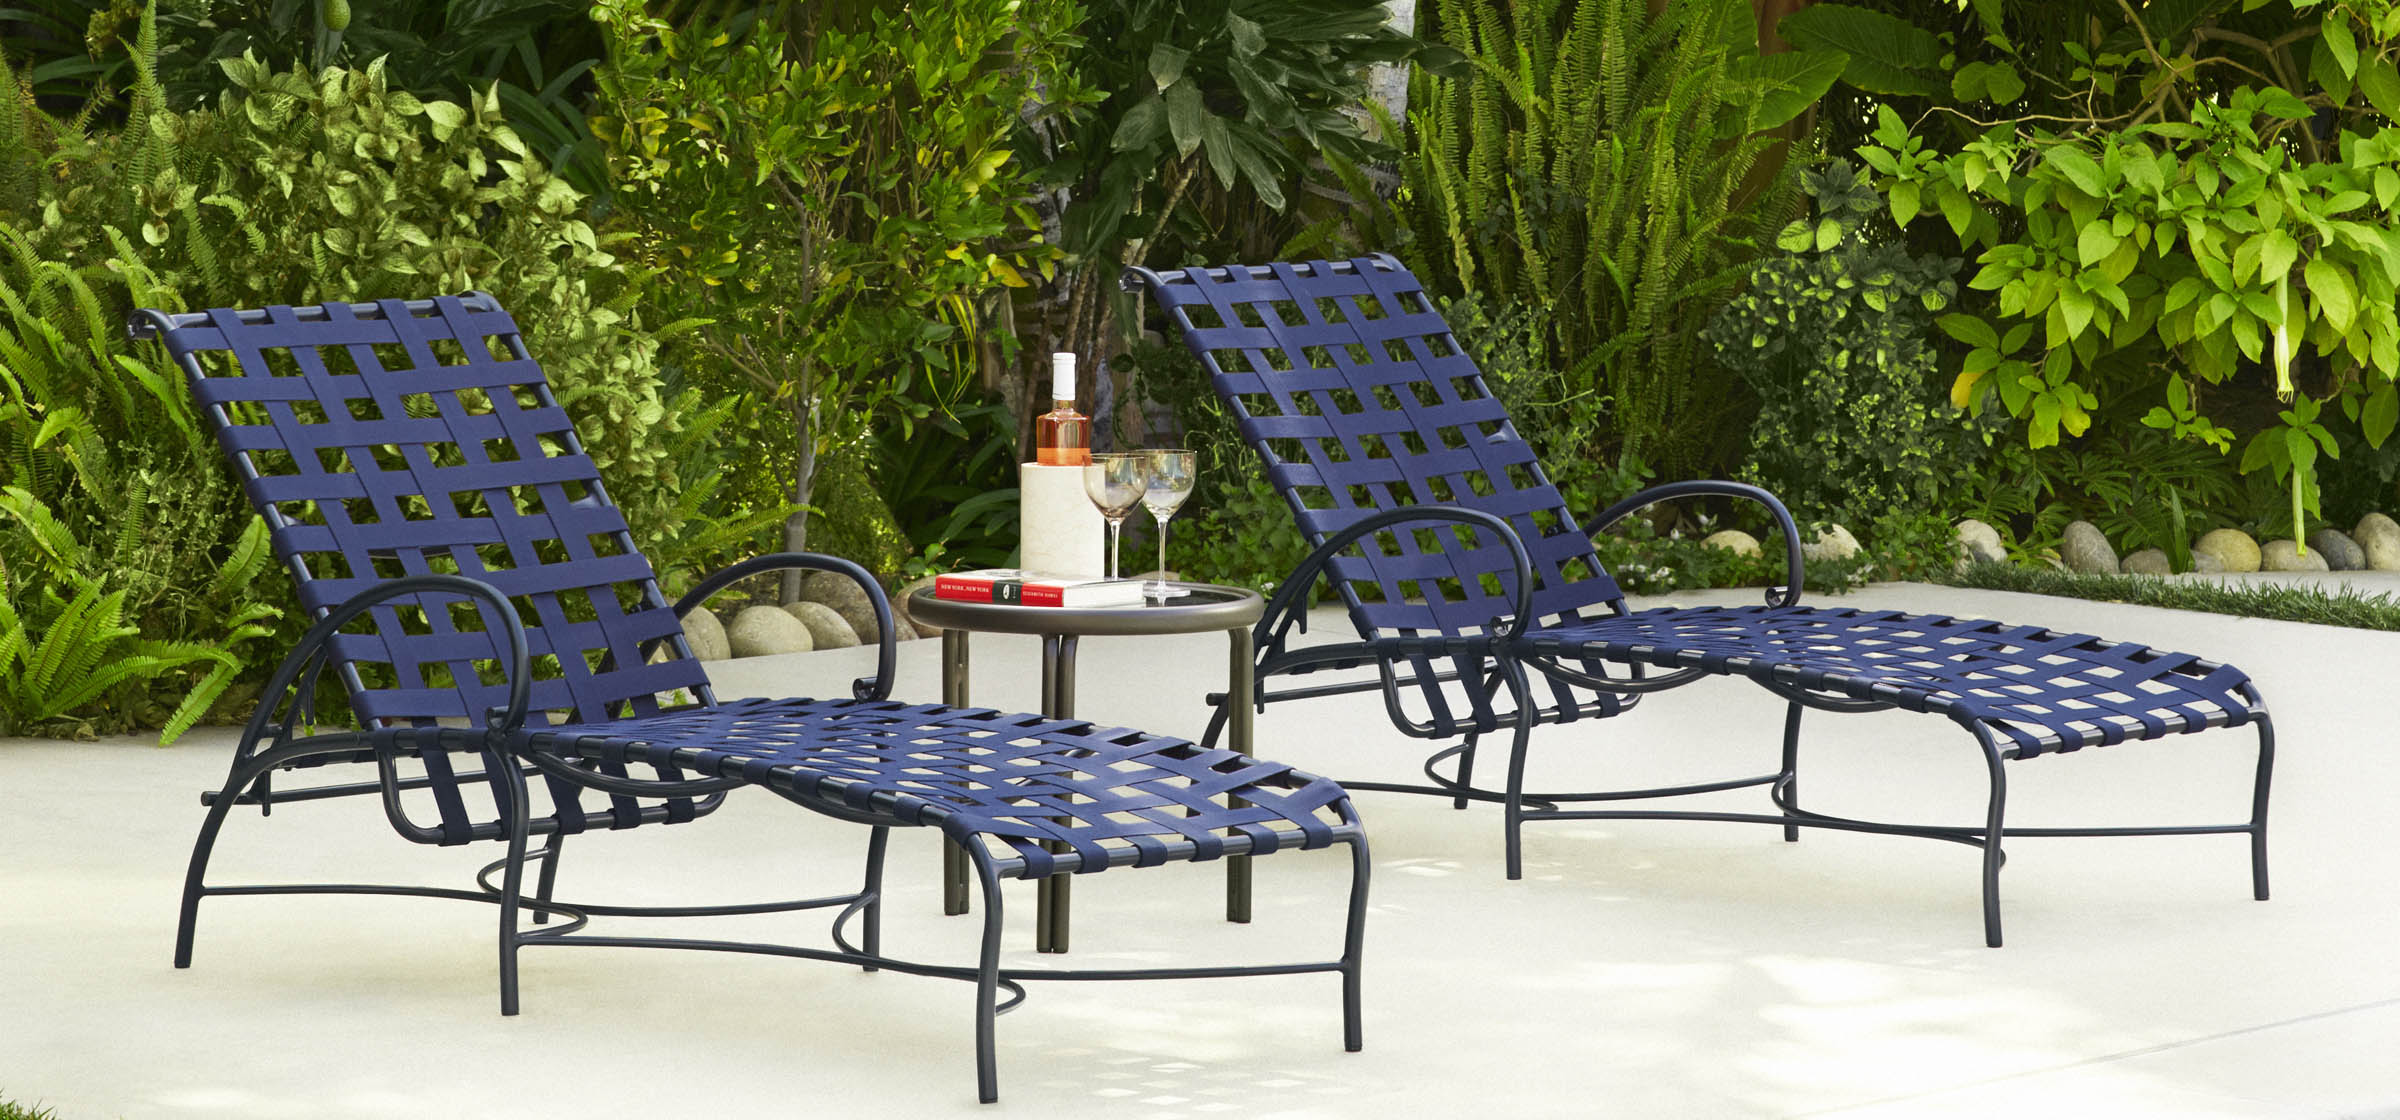 ipe adirondack chairs gaming chair with pedestal outdoor furniture - patio luxury garden side benches poolside ...